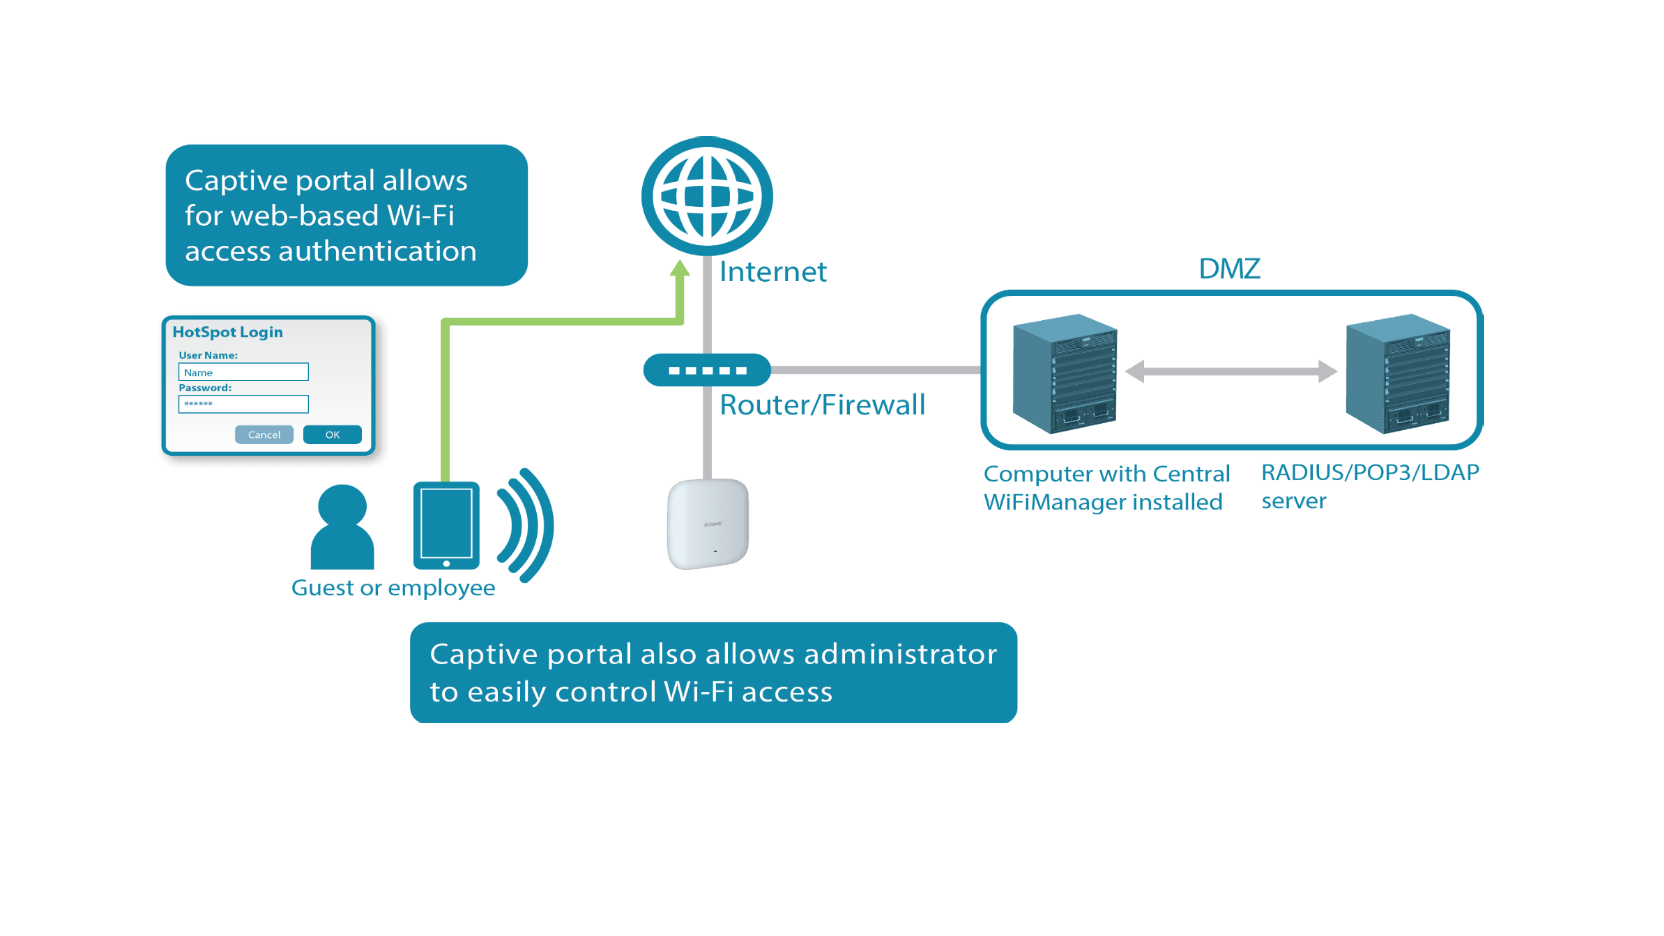 CWM 100 Captive Portal View